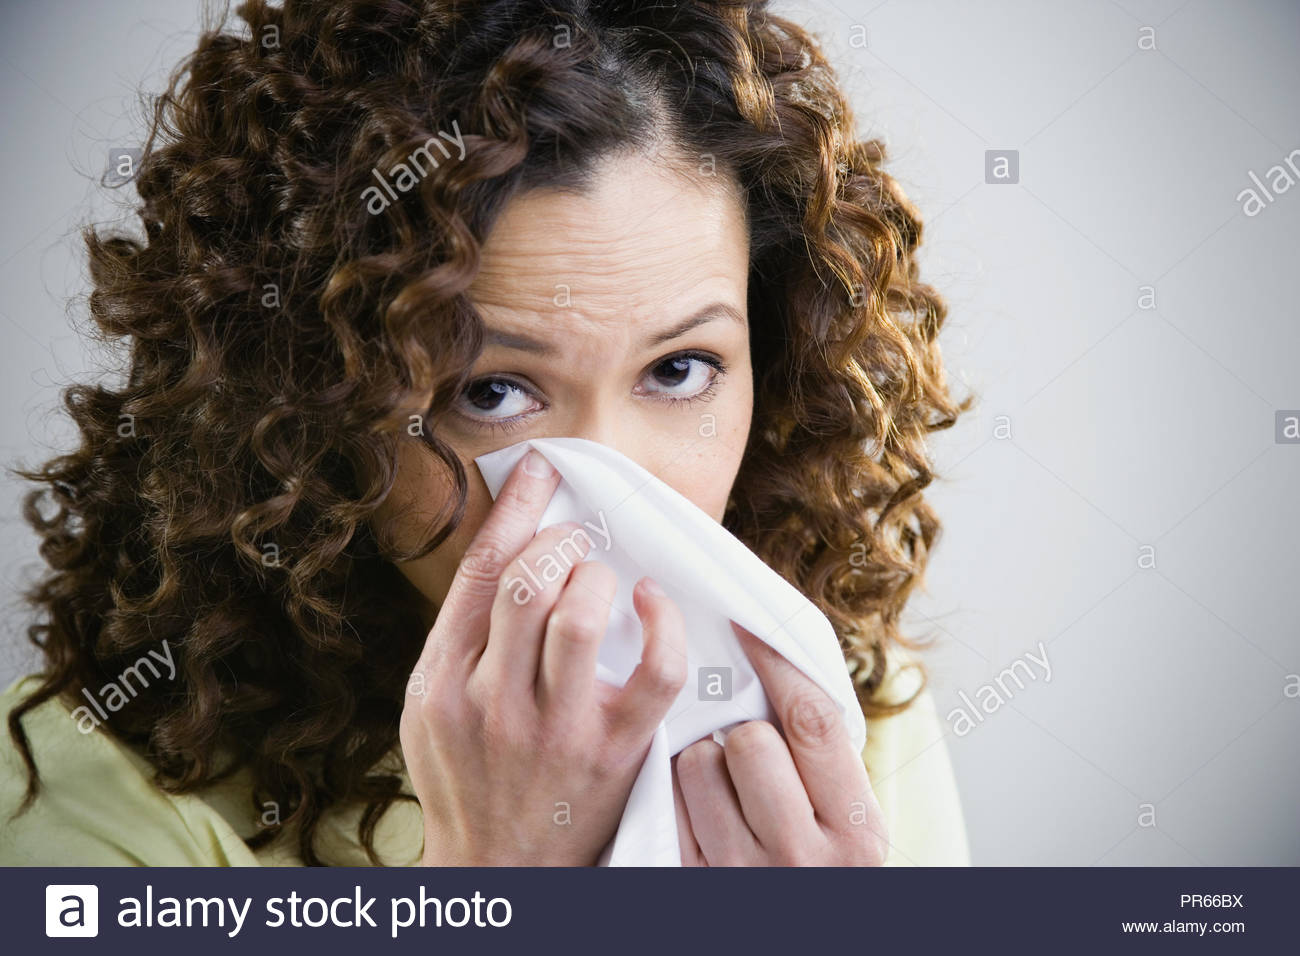 Close up of woman dabbing eye with tissue - Stock Image